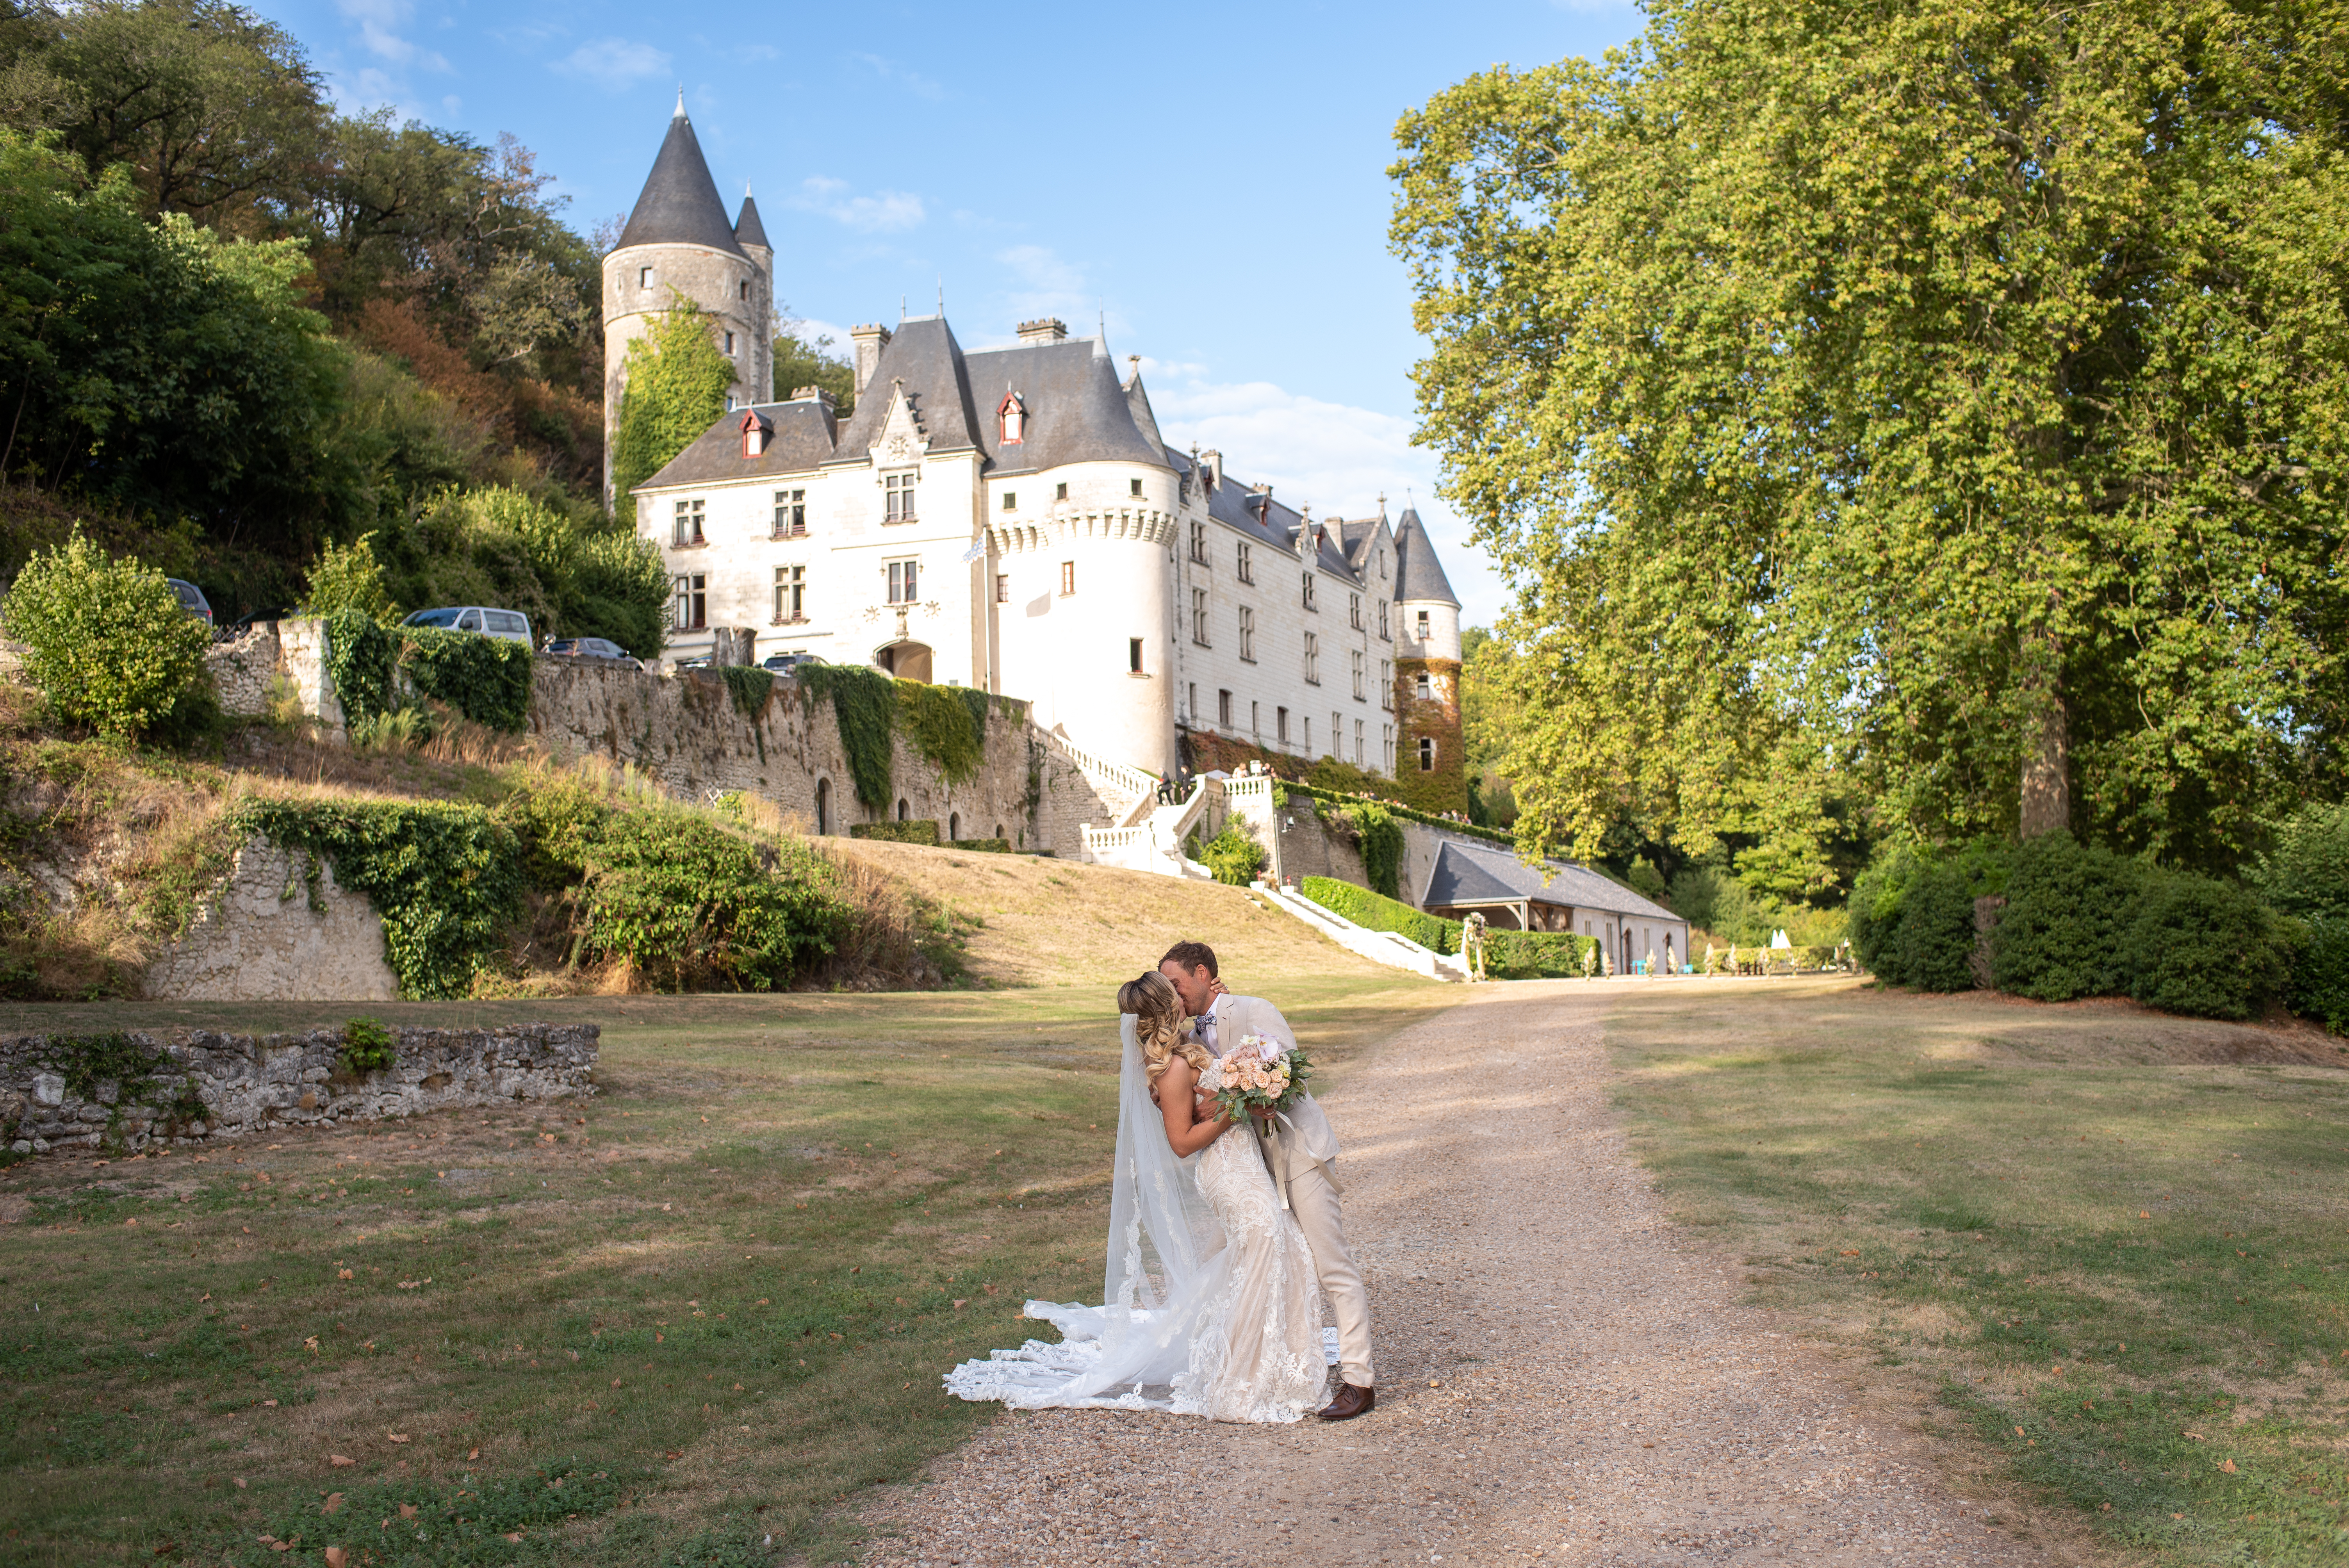 How to find the Wedding venue in France: QUESTIONS TO ASK